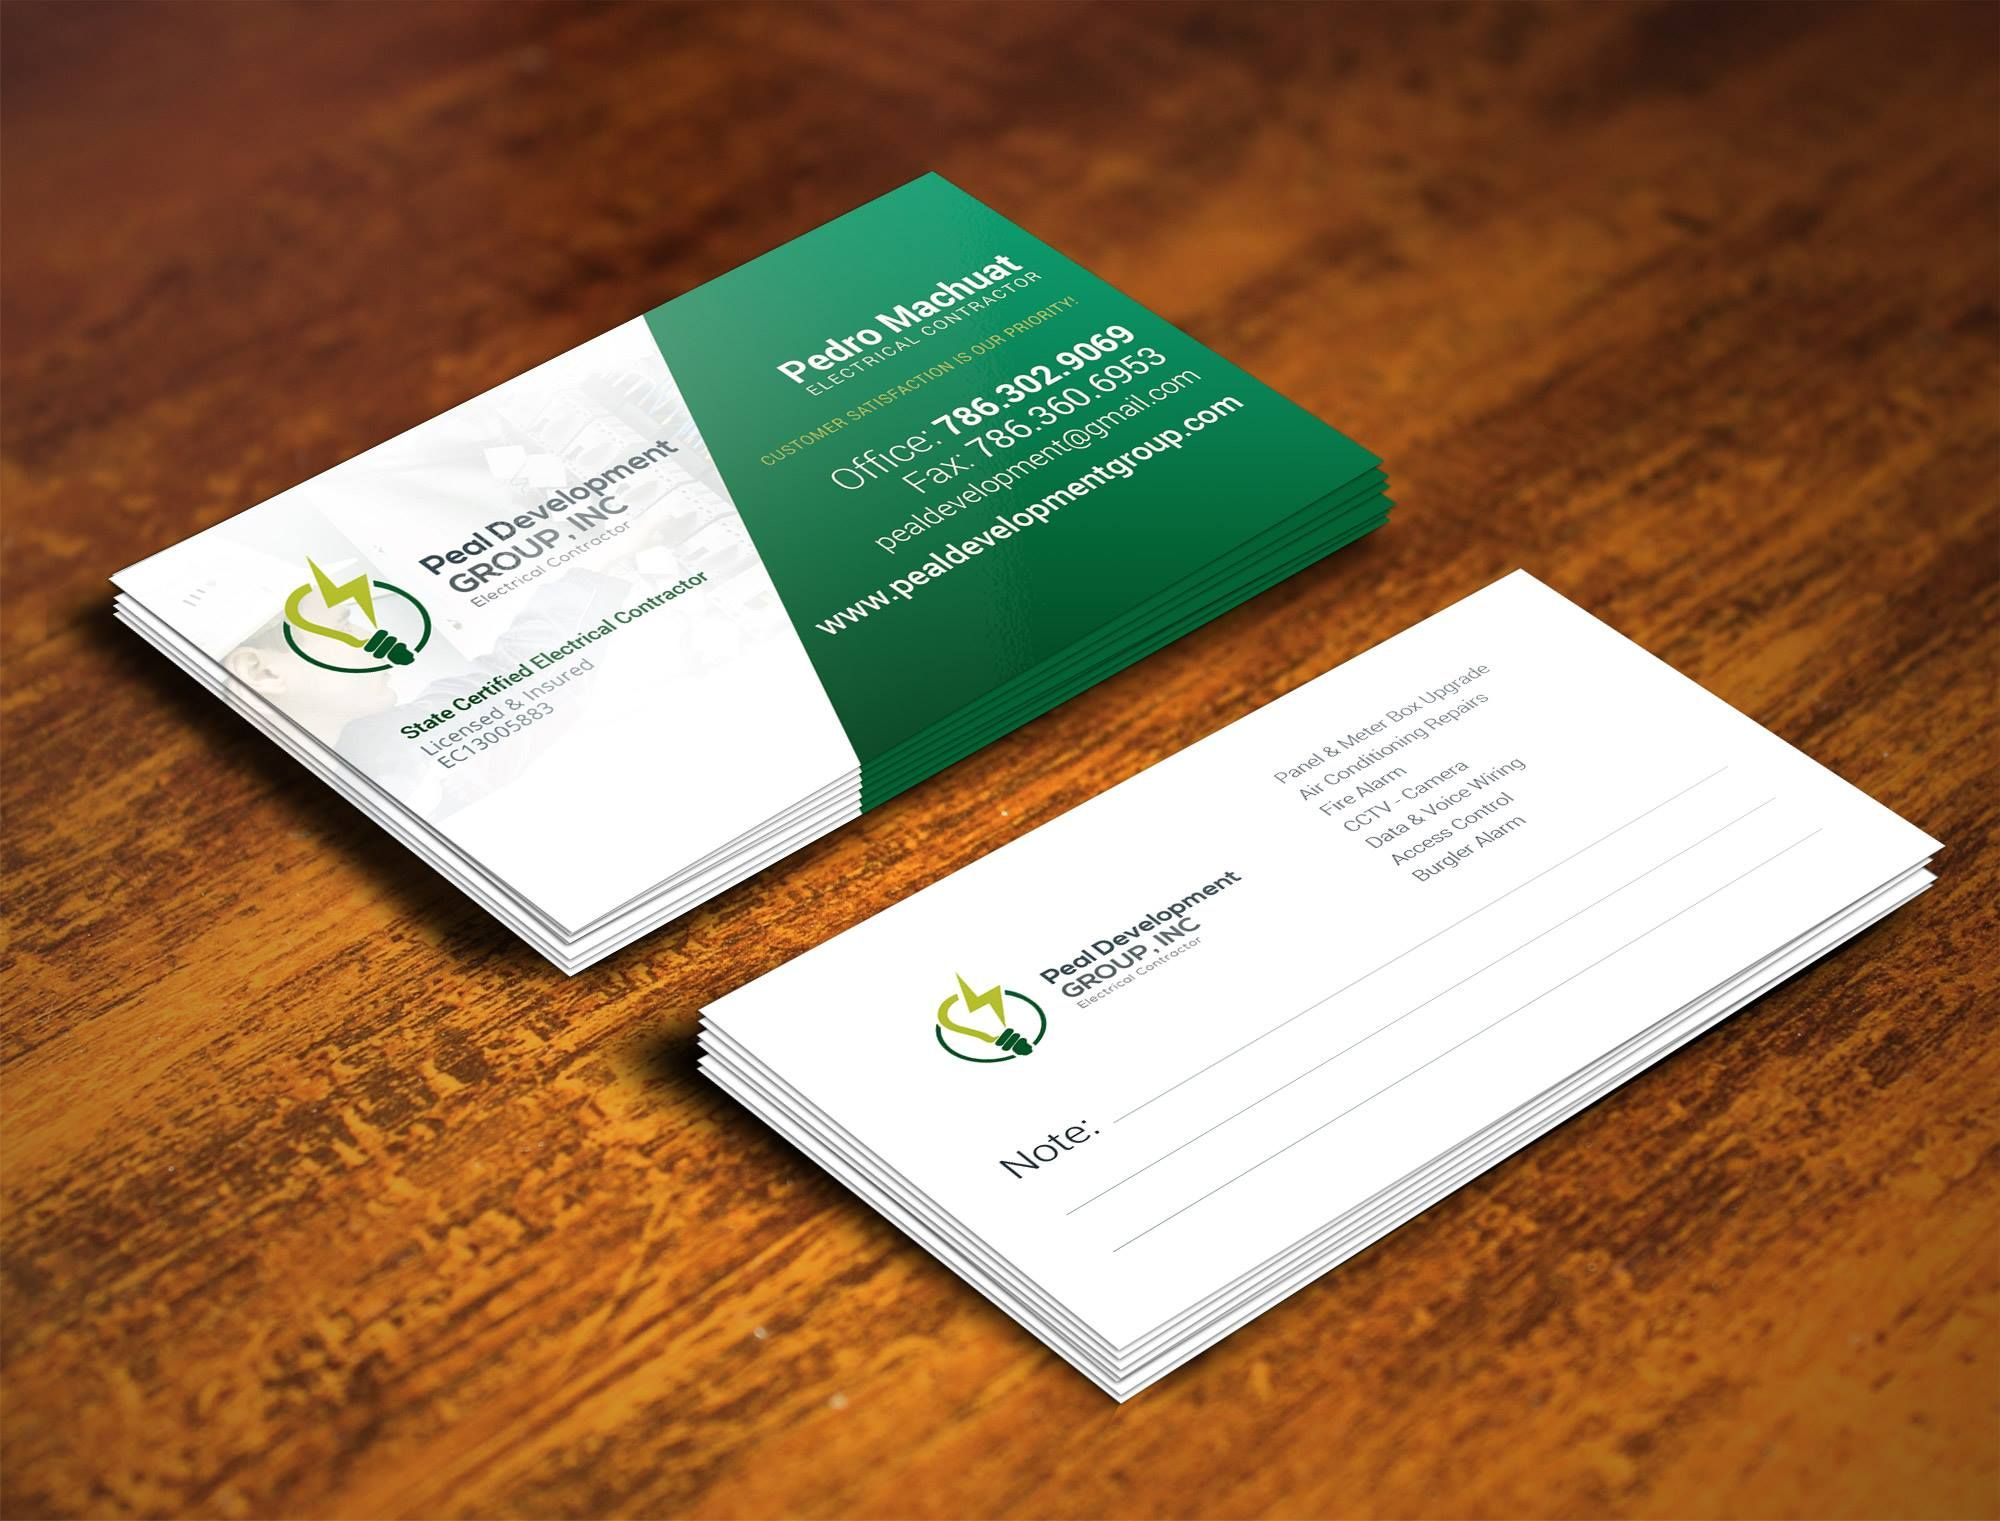 Electrical Business Cards Design By Blue Rhino Media Call 305 204